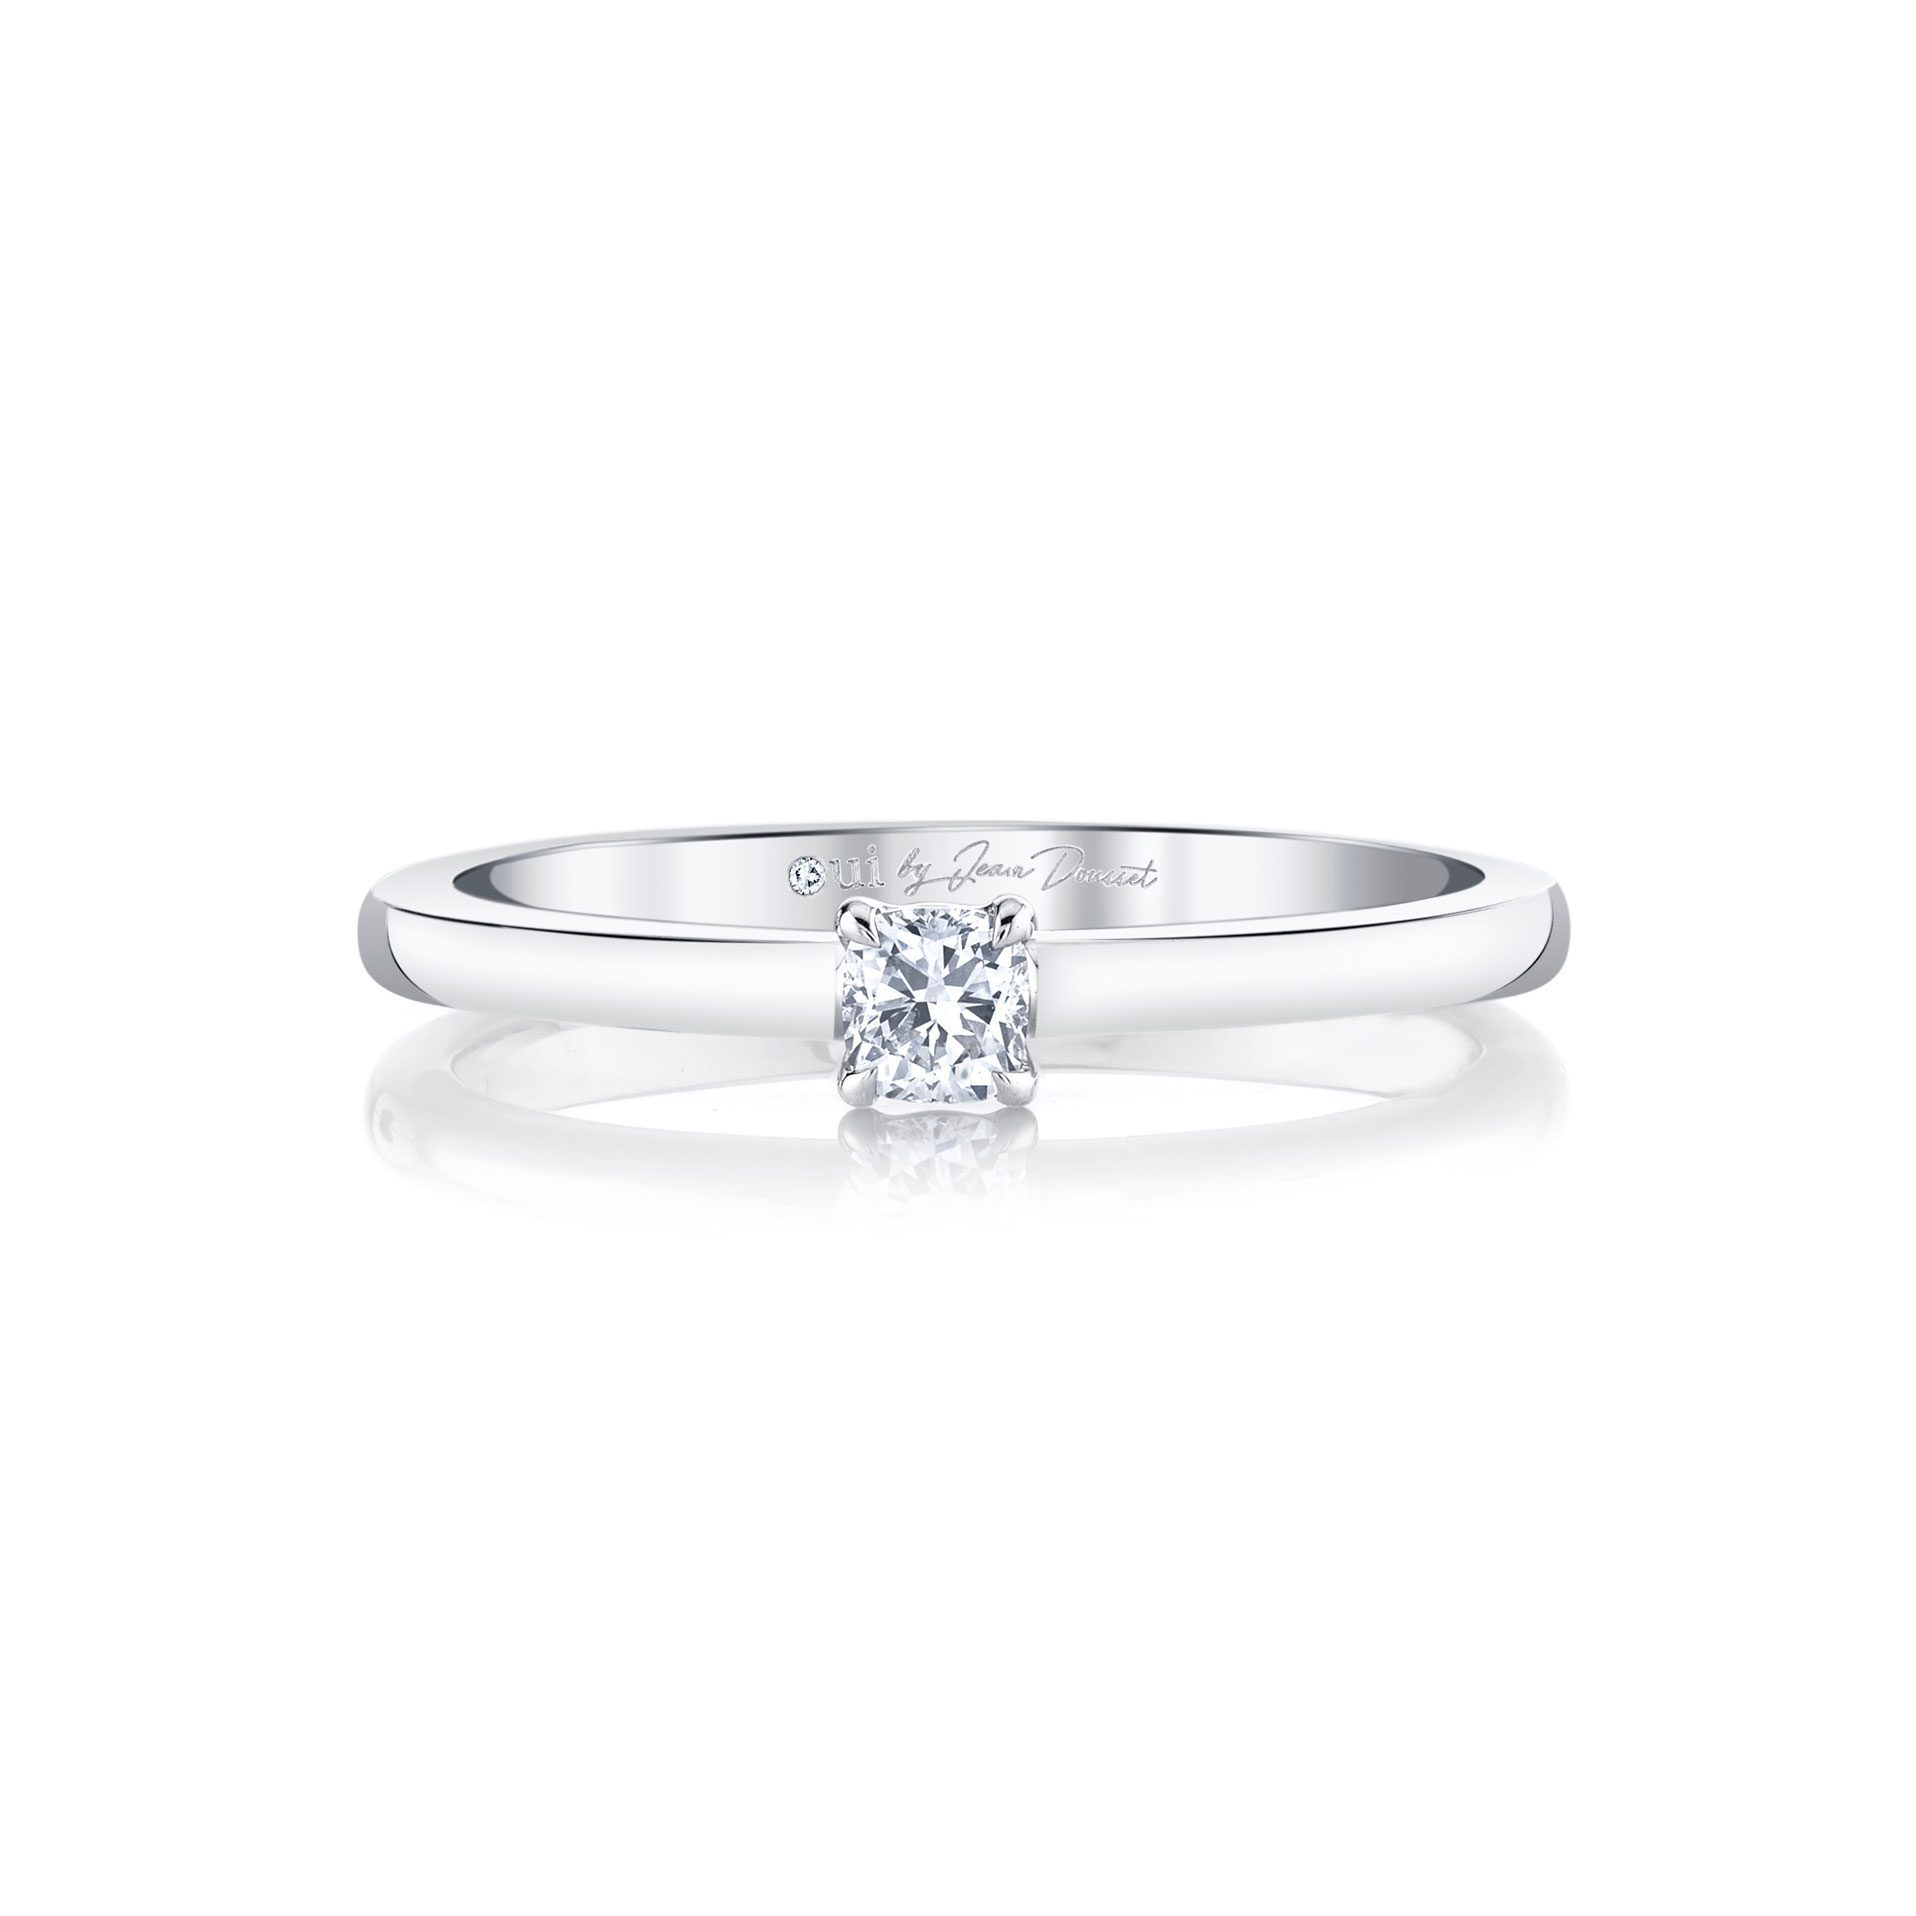 La Petite Cushion Diamond Wedding Band in 18k White Gold Front View by Oui by Jean Dousset